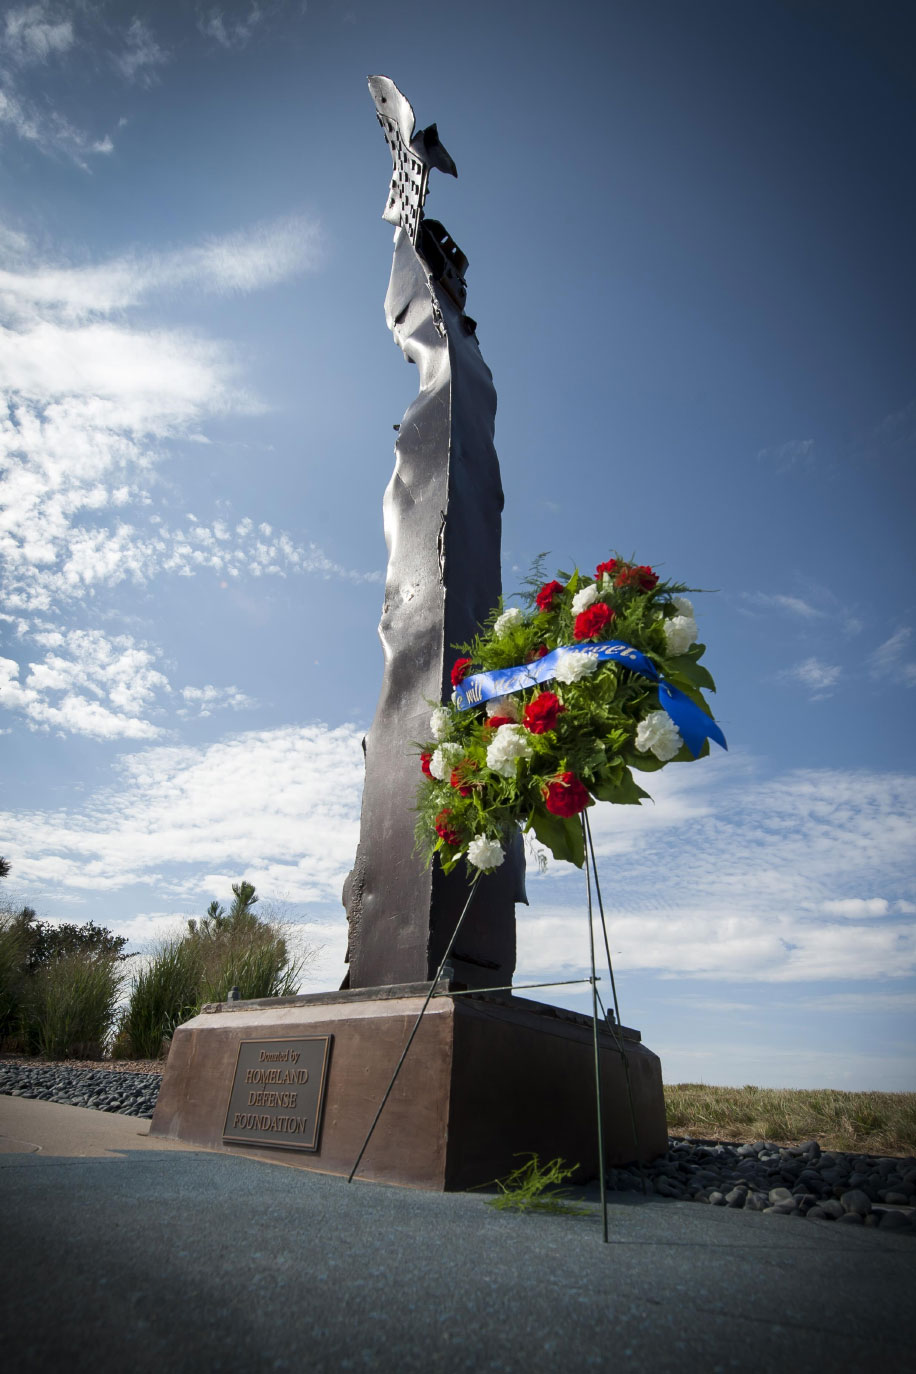 U.S. Air Force photo/Dennis Rogers A wreath sits on display in front of a monument, crafted from a steel beam salvaged from the World Trade Center attacks, during the Pikes Peak Area 9/11 commemoration ceremony 'A Community Remembers' at Schriever Air Force Base, Colorado, Monday, Sept. 11, 2017. The wreath laying focused on the somber memories of that day, never to be forgotten. Don Addy, chairman of the Colorado Thirty Group, secured the steel beam for the monument during his tenure as the National Homeland Defense Foundation president.